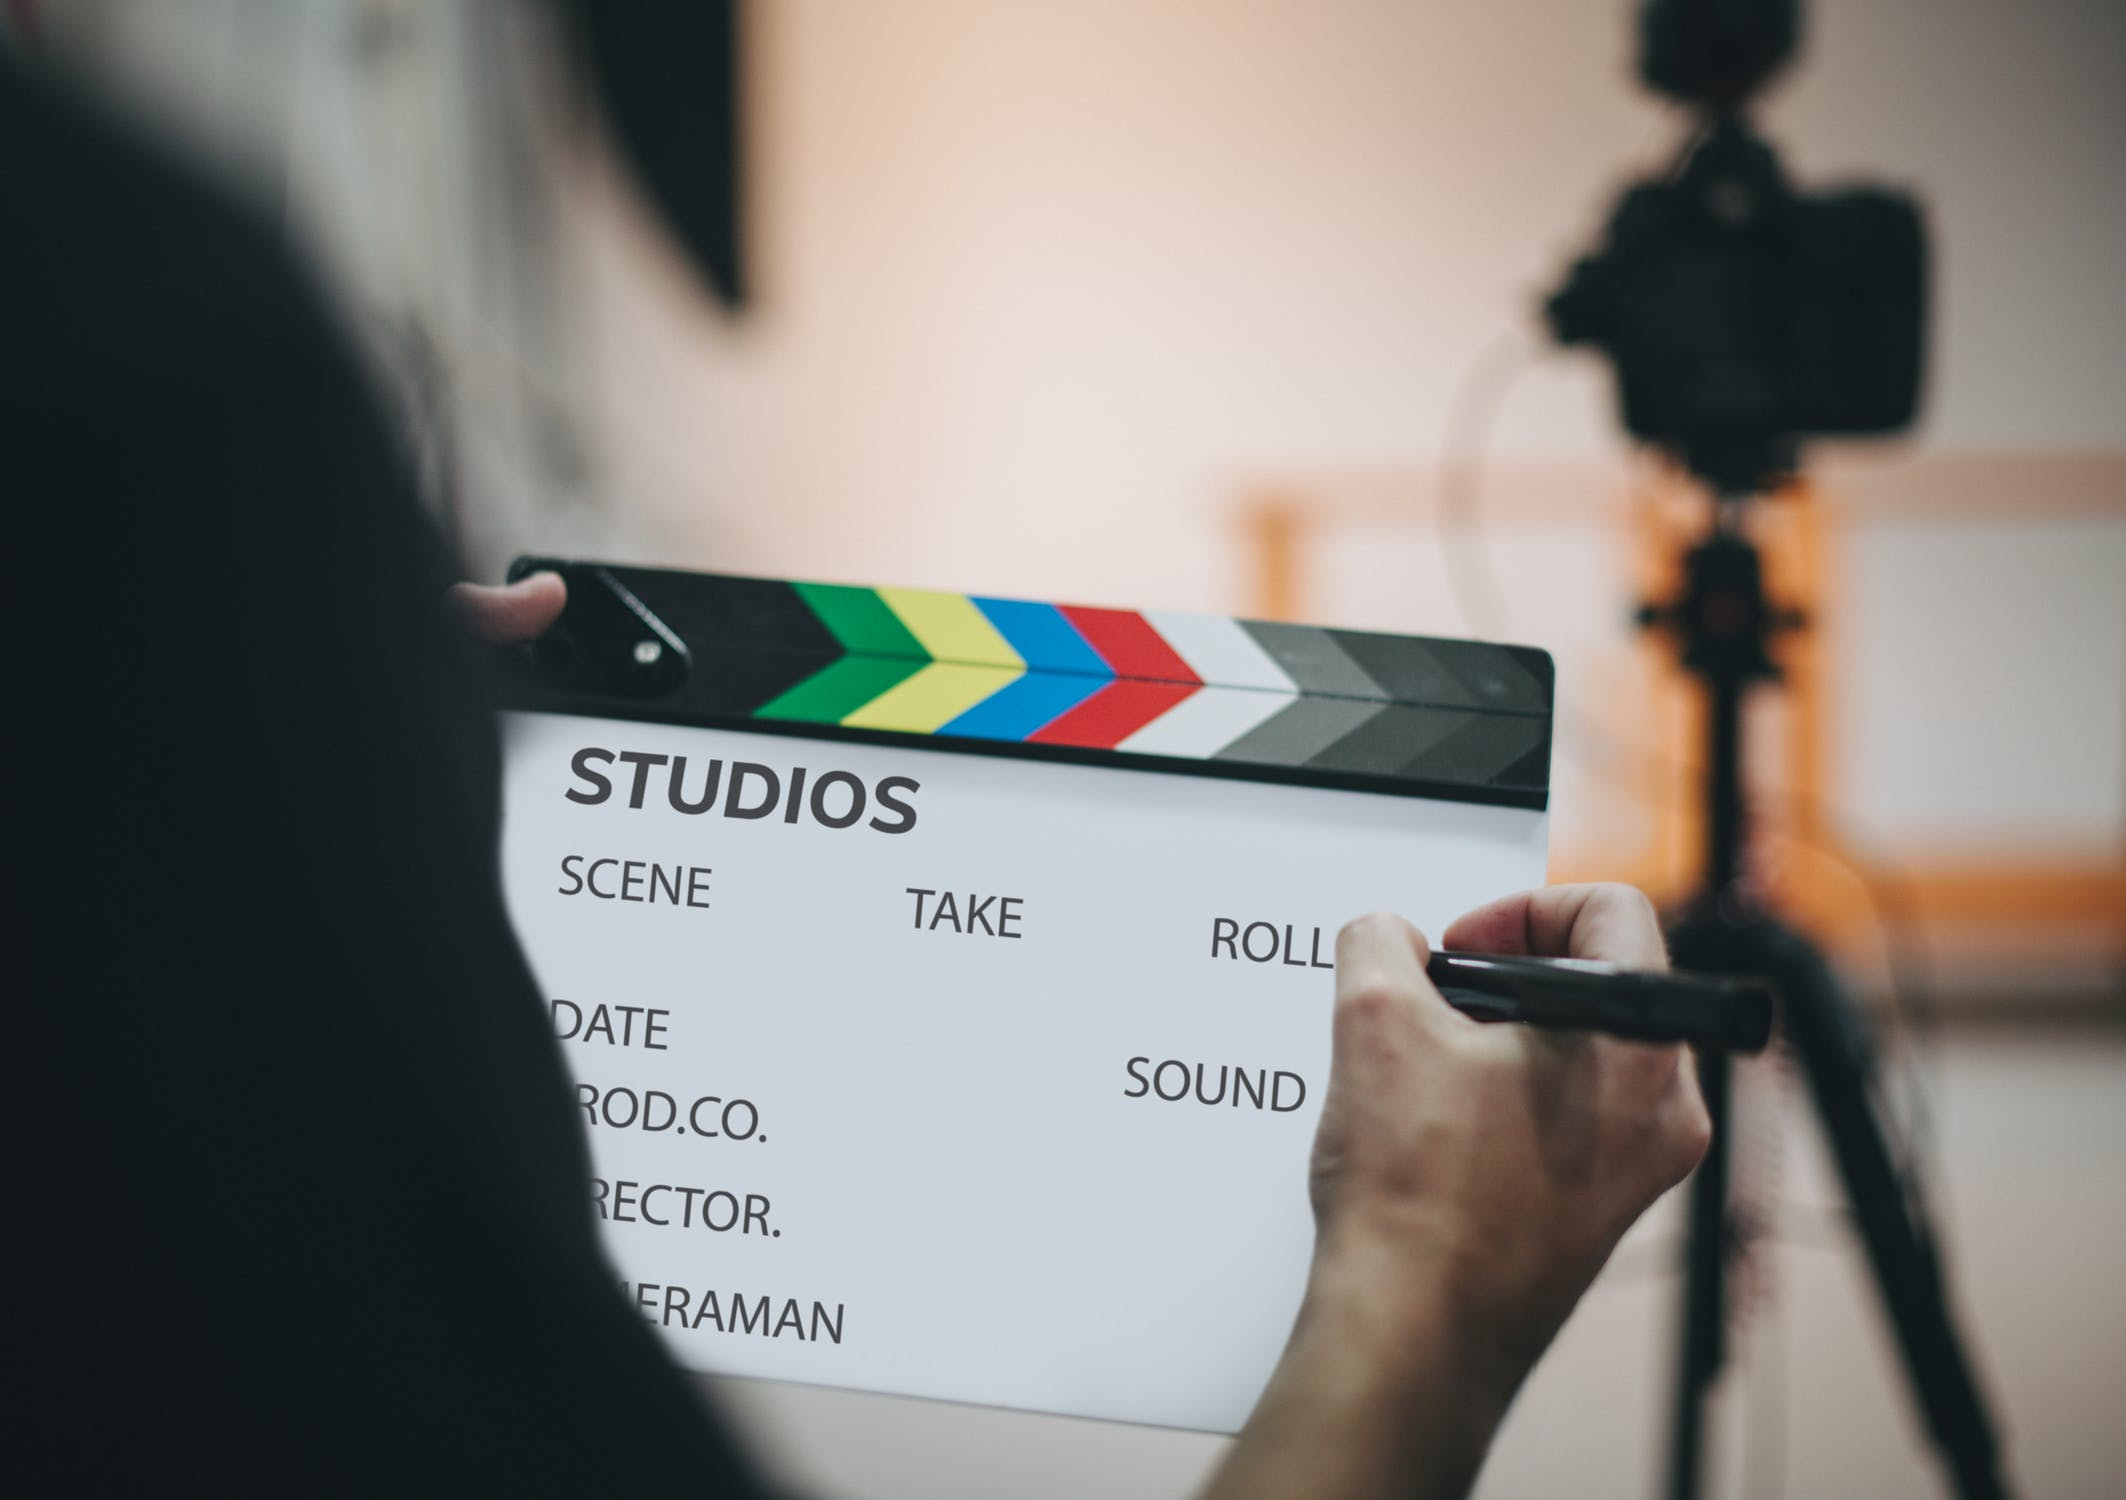 Networking in the film industry